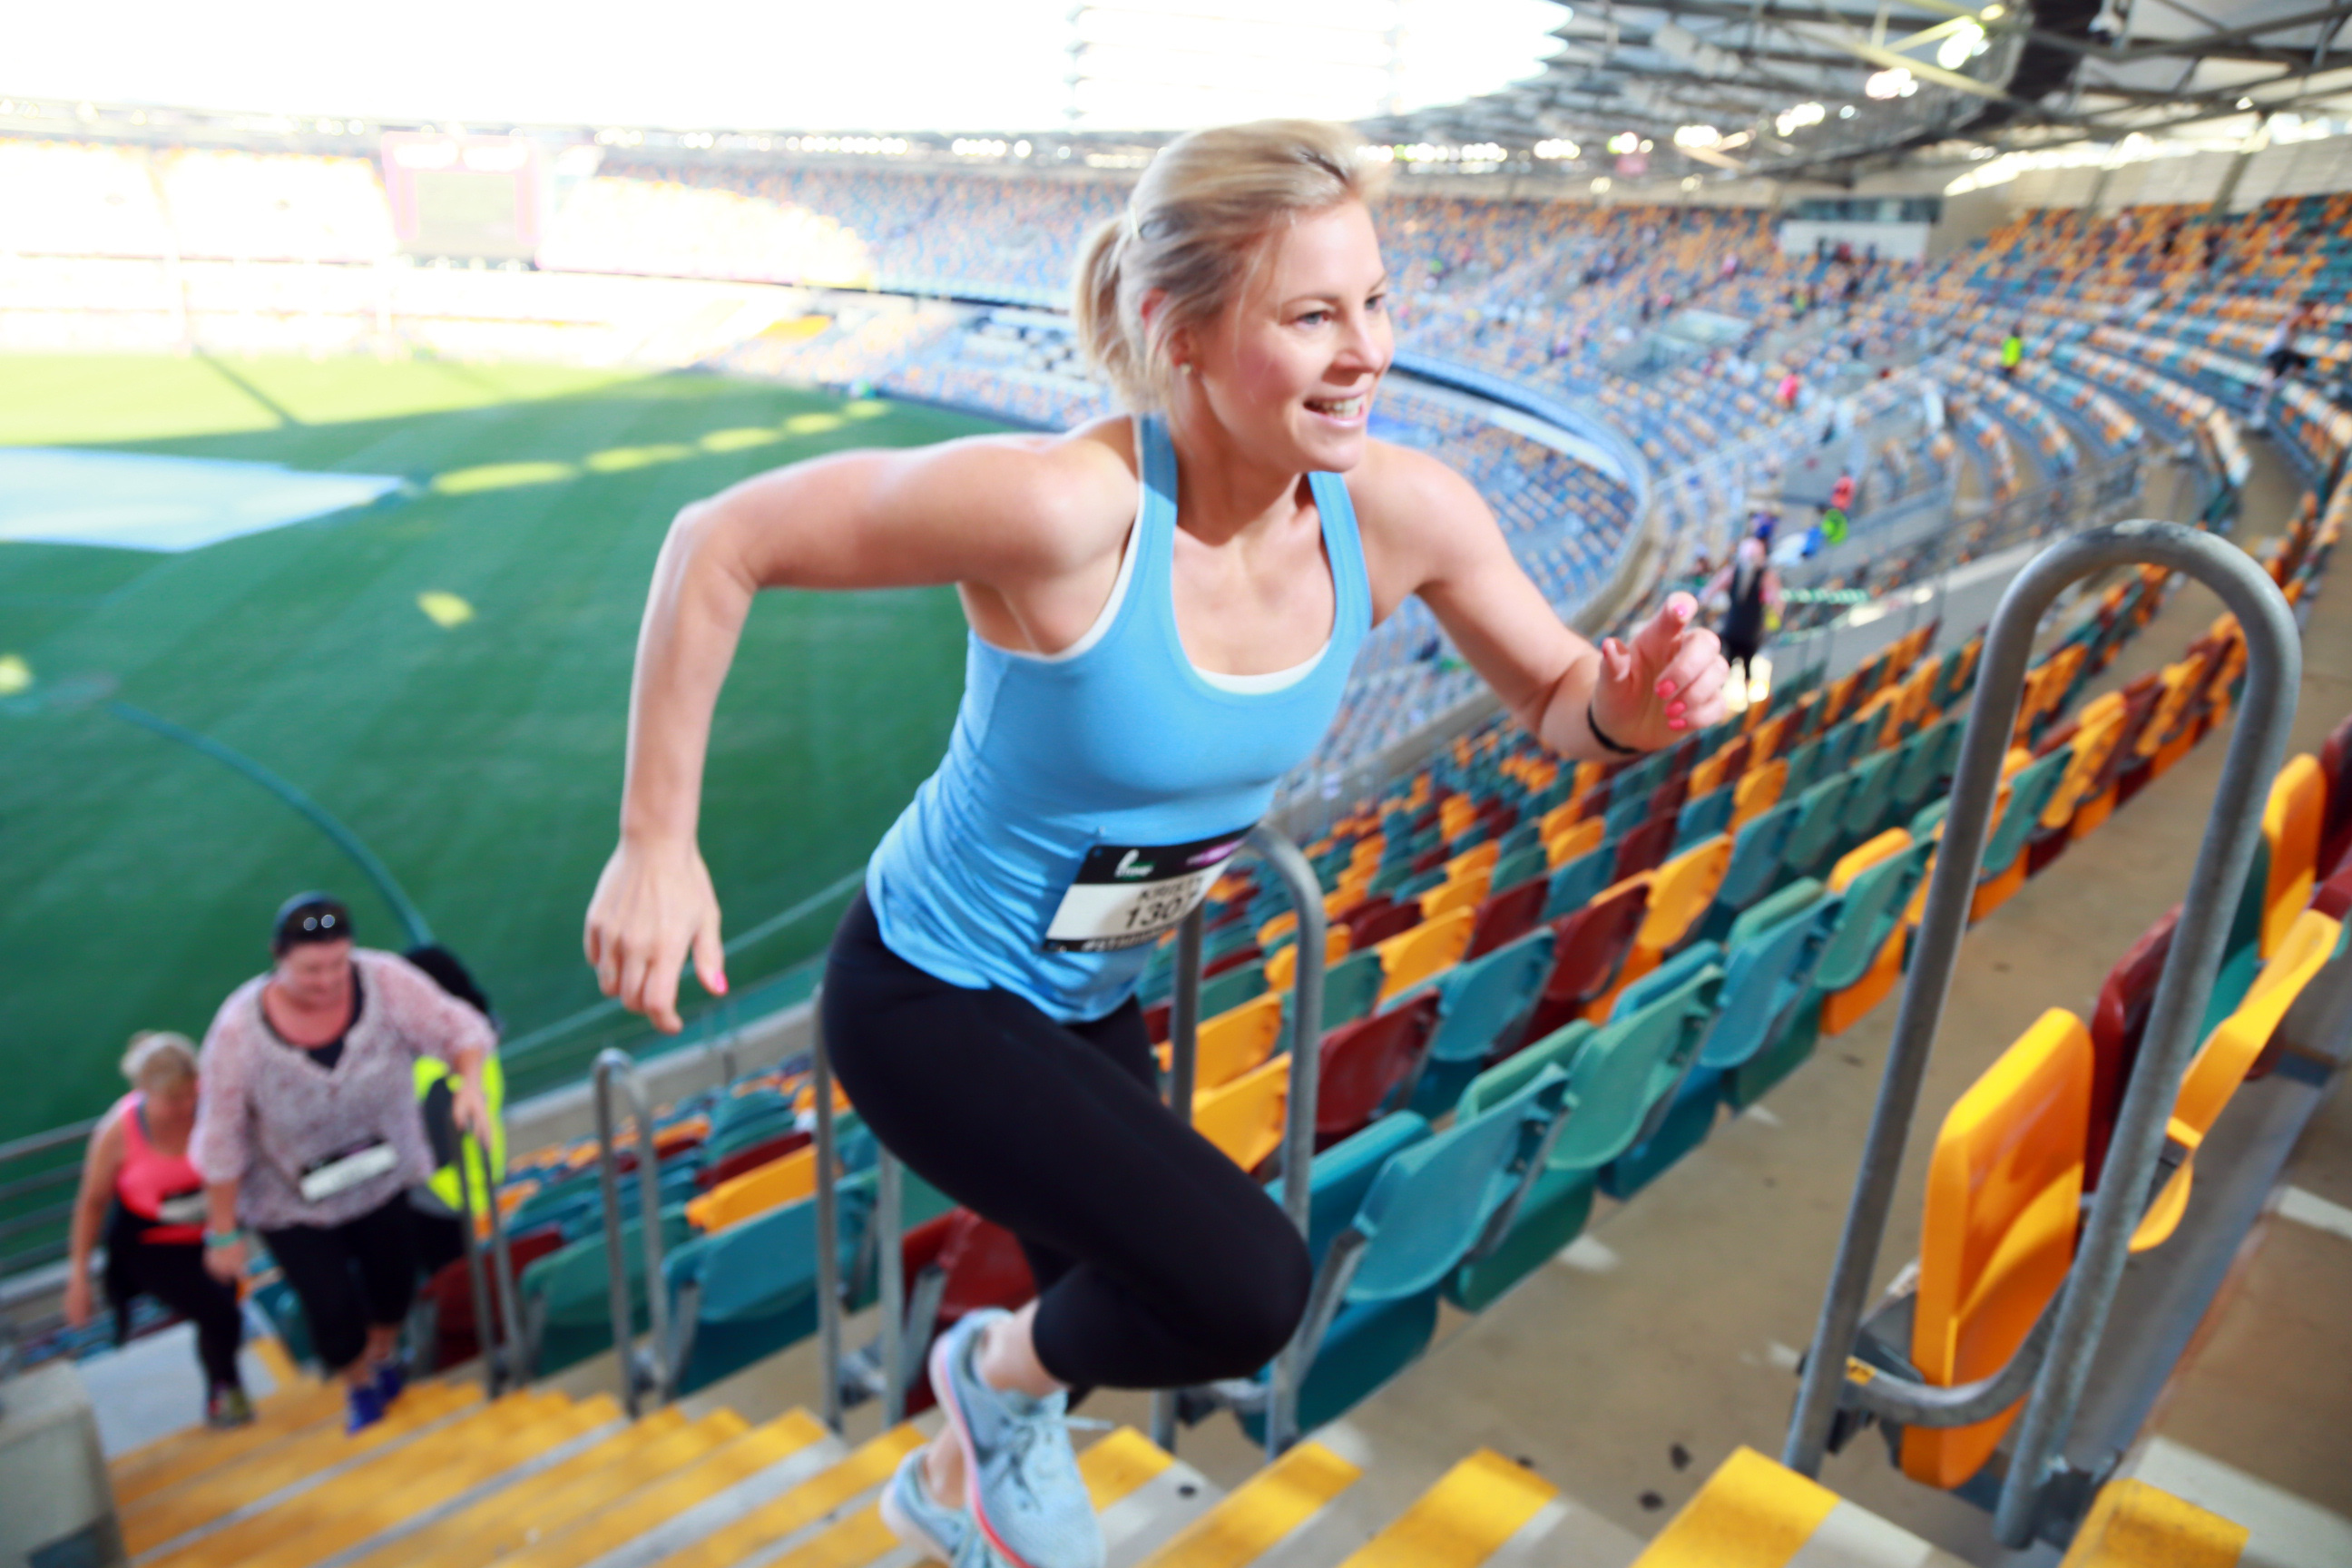 7 things about stair climbing that may surprise you!